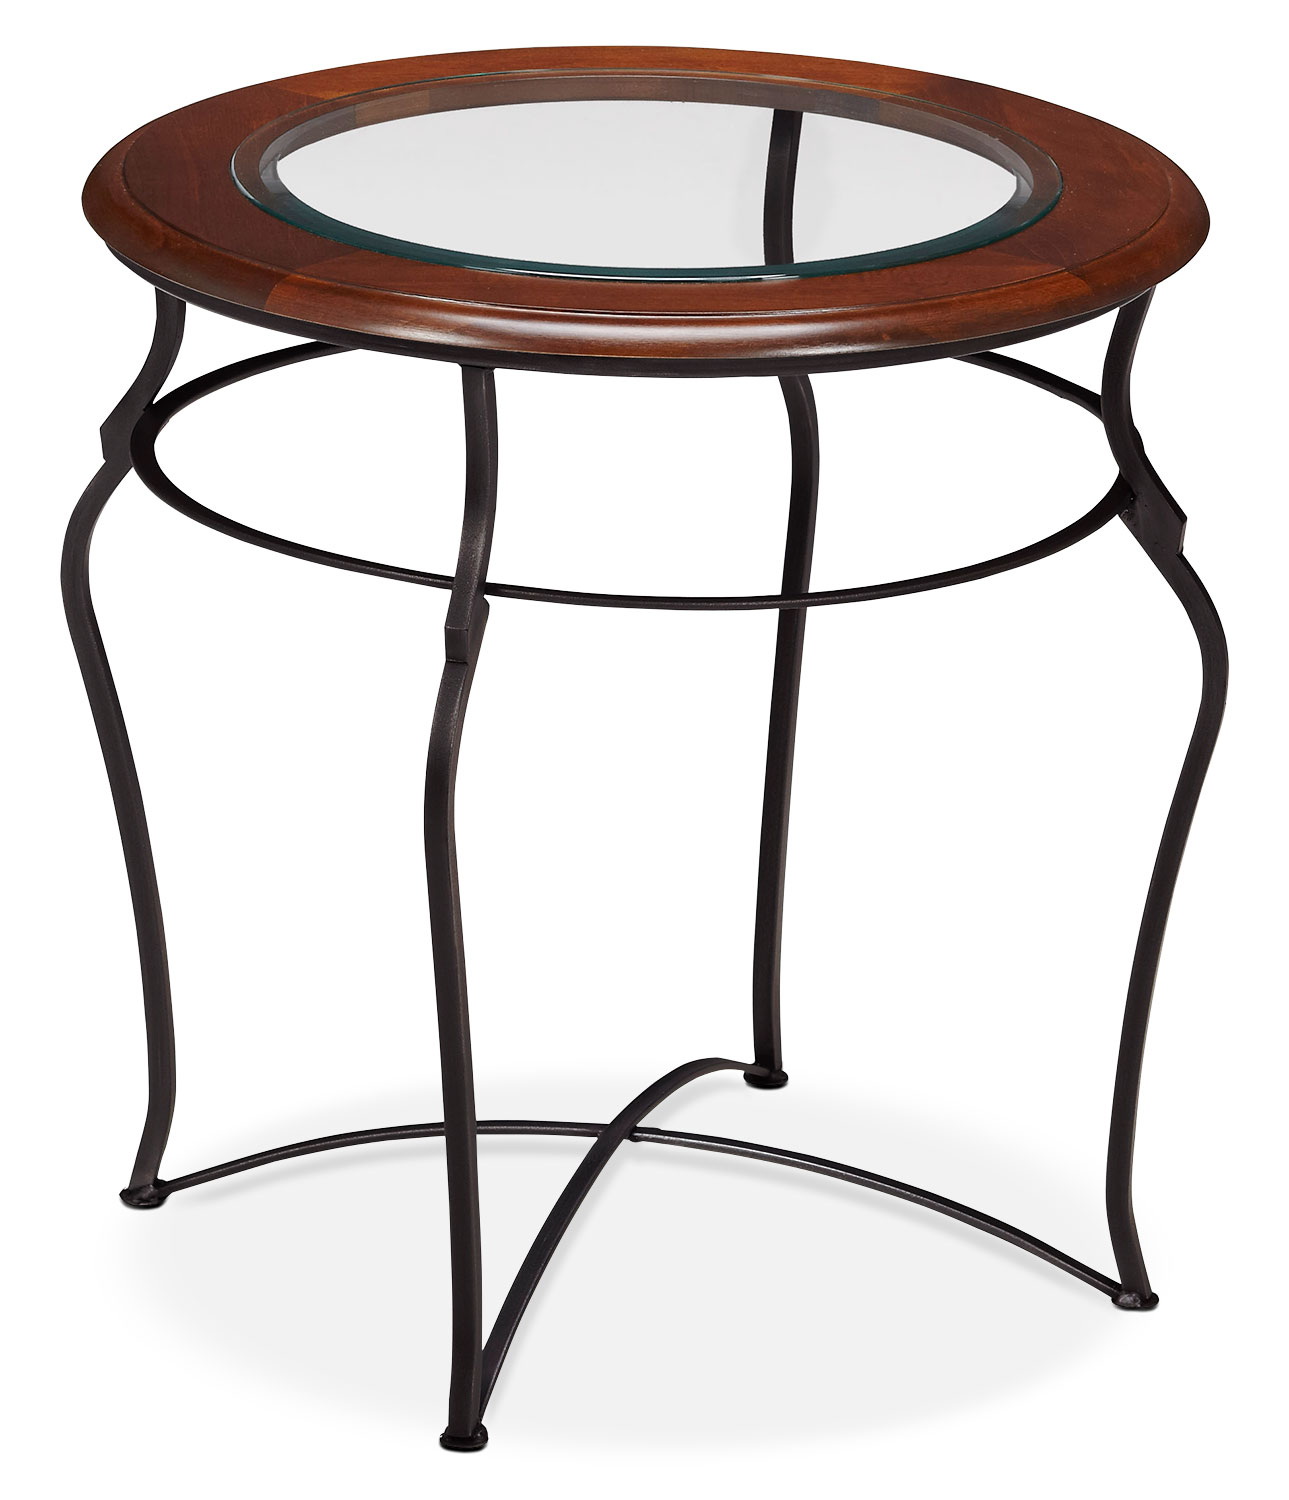 Online Only - Adele End Table - Glass Top with Black Base